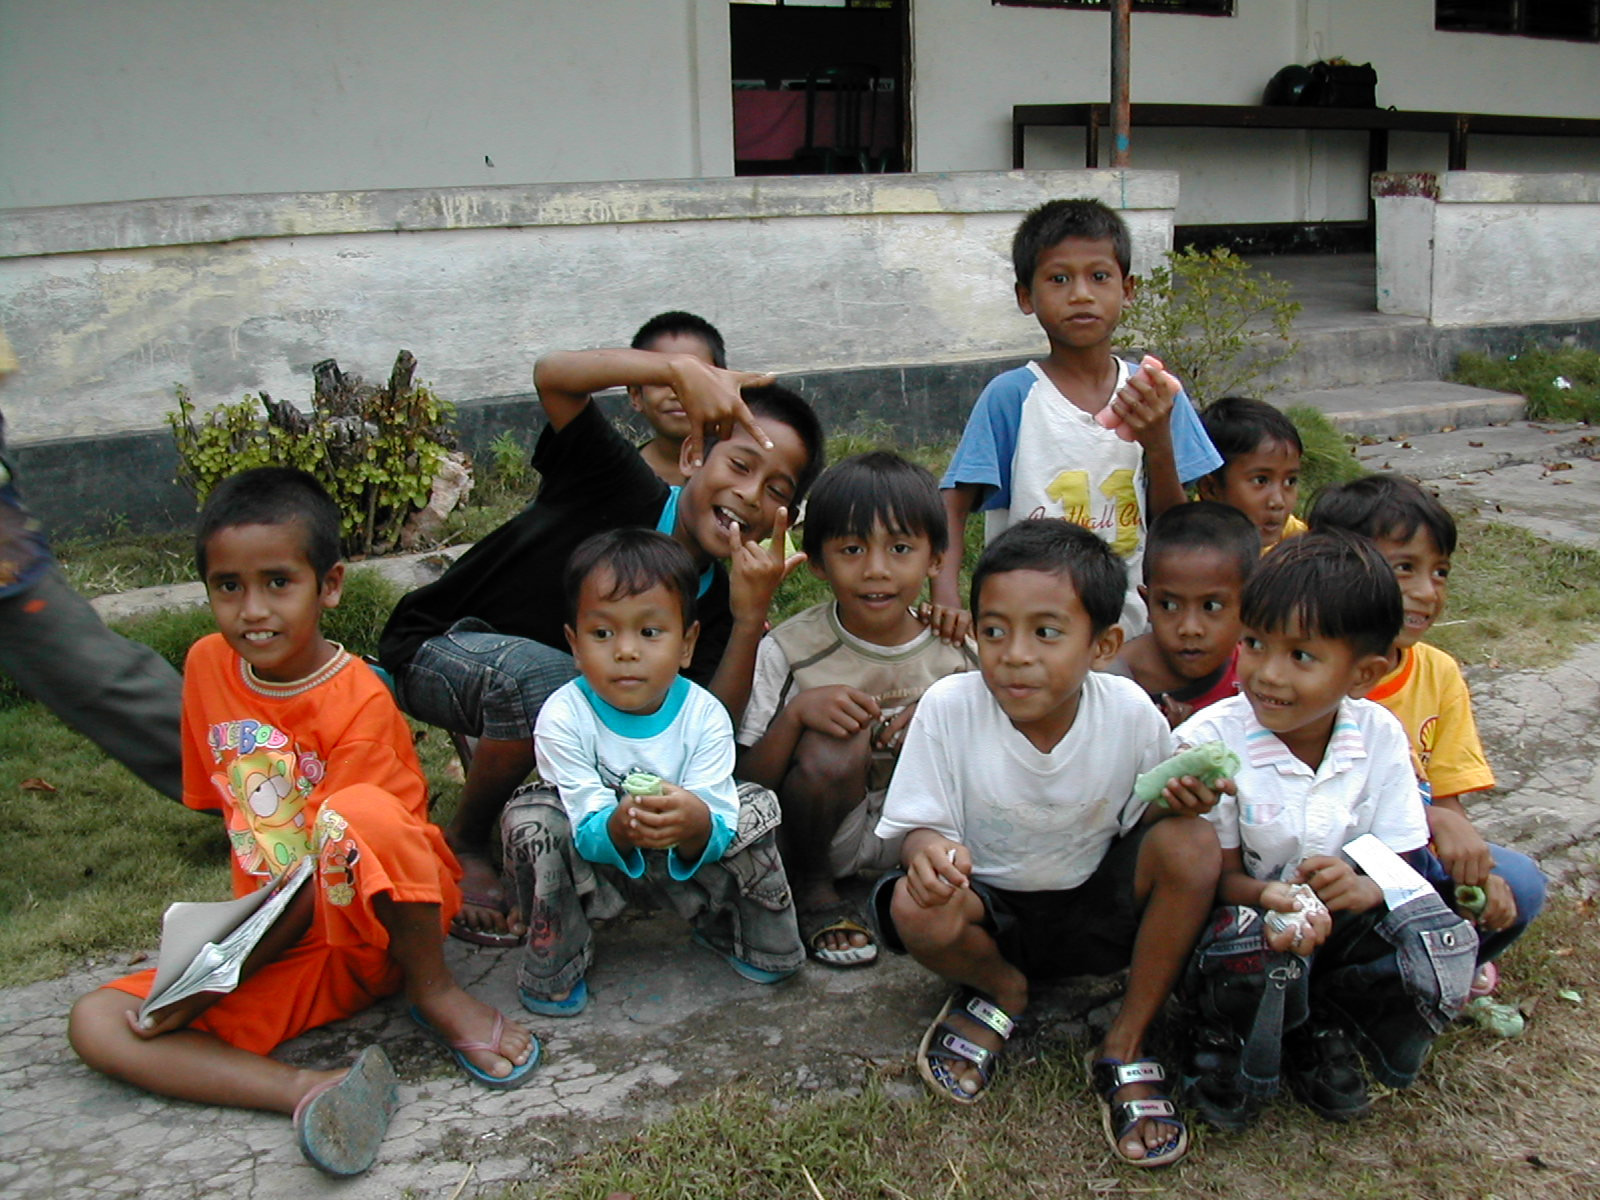 Kids in Indonesia